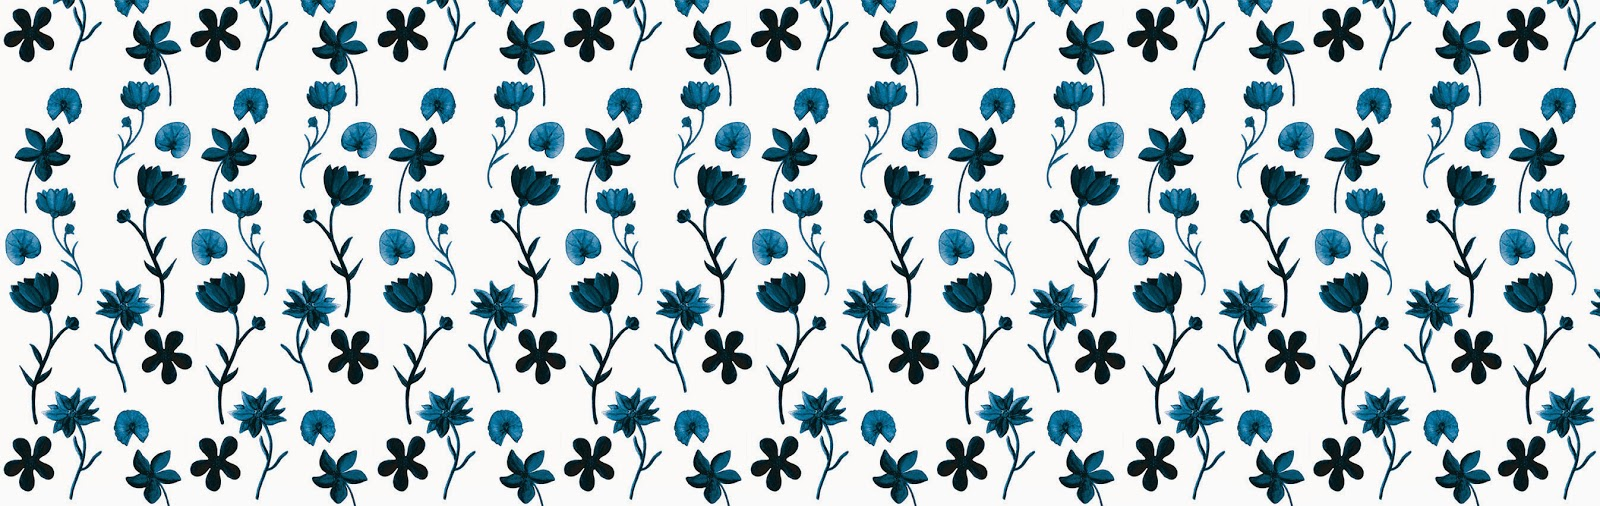 Blue Flowers - Jen Haugan Animation & Illustration